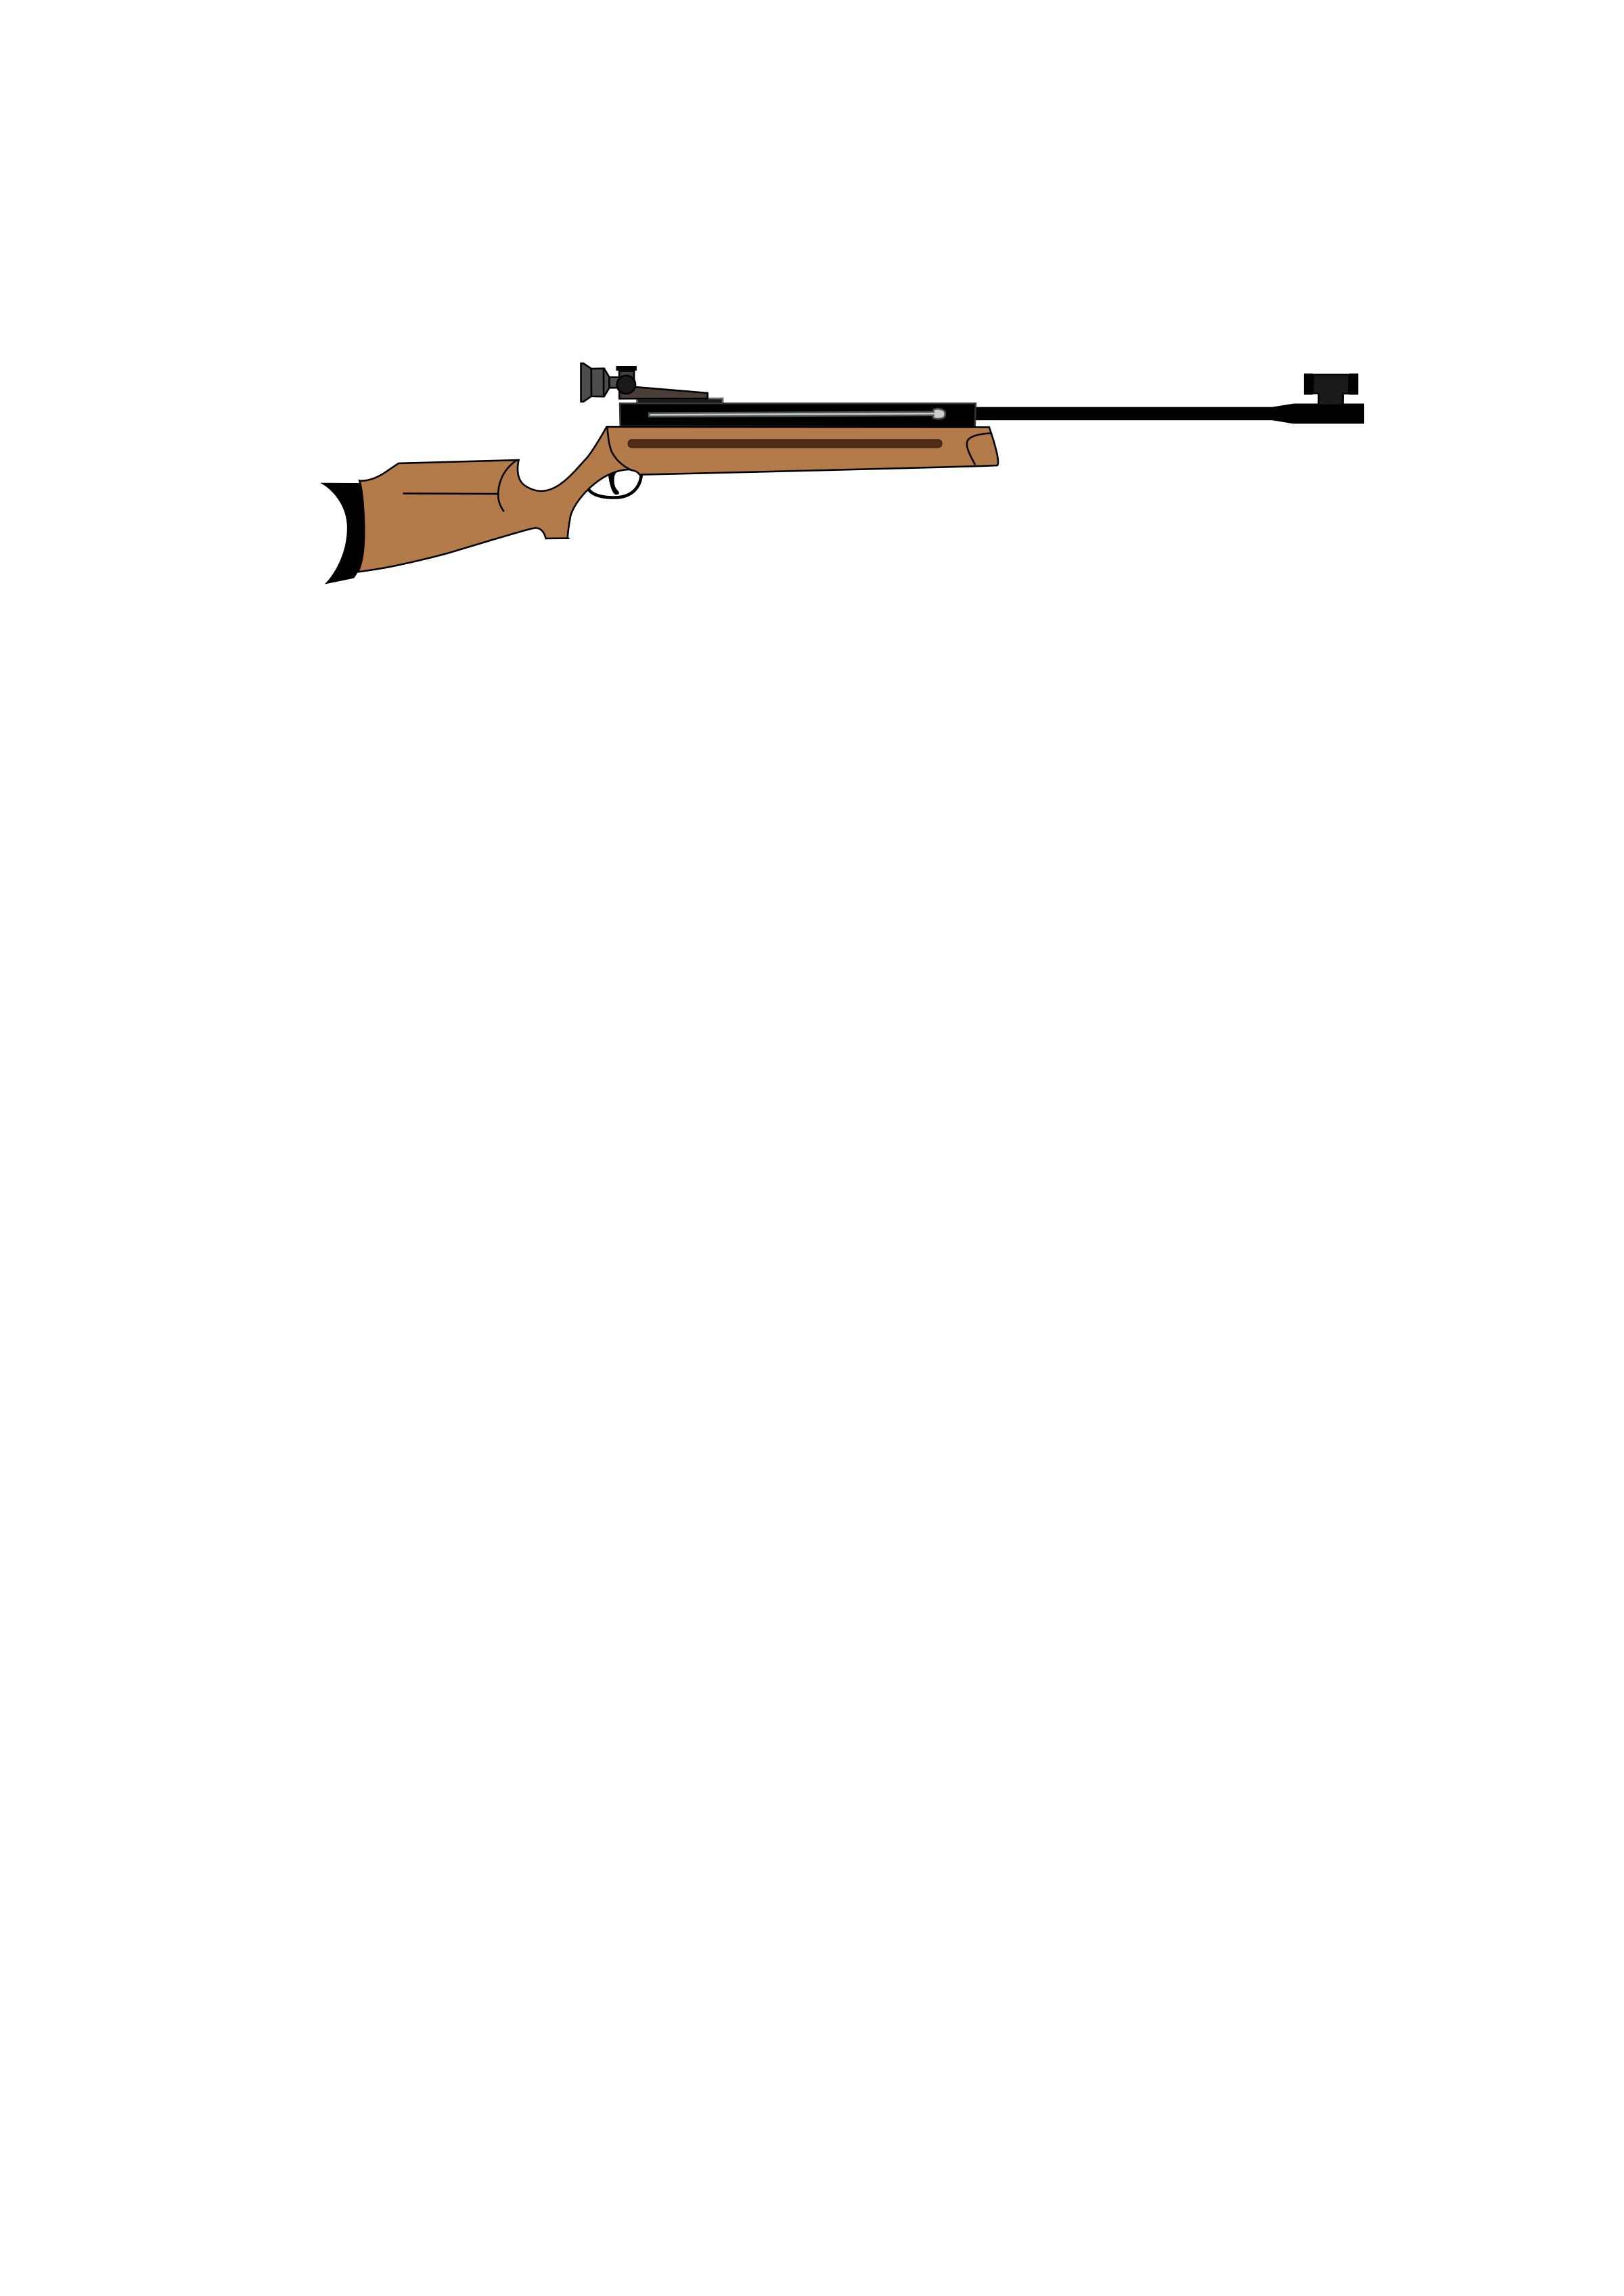 air rifle by Helm42